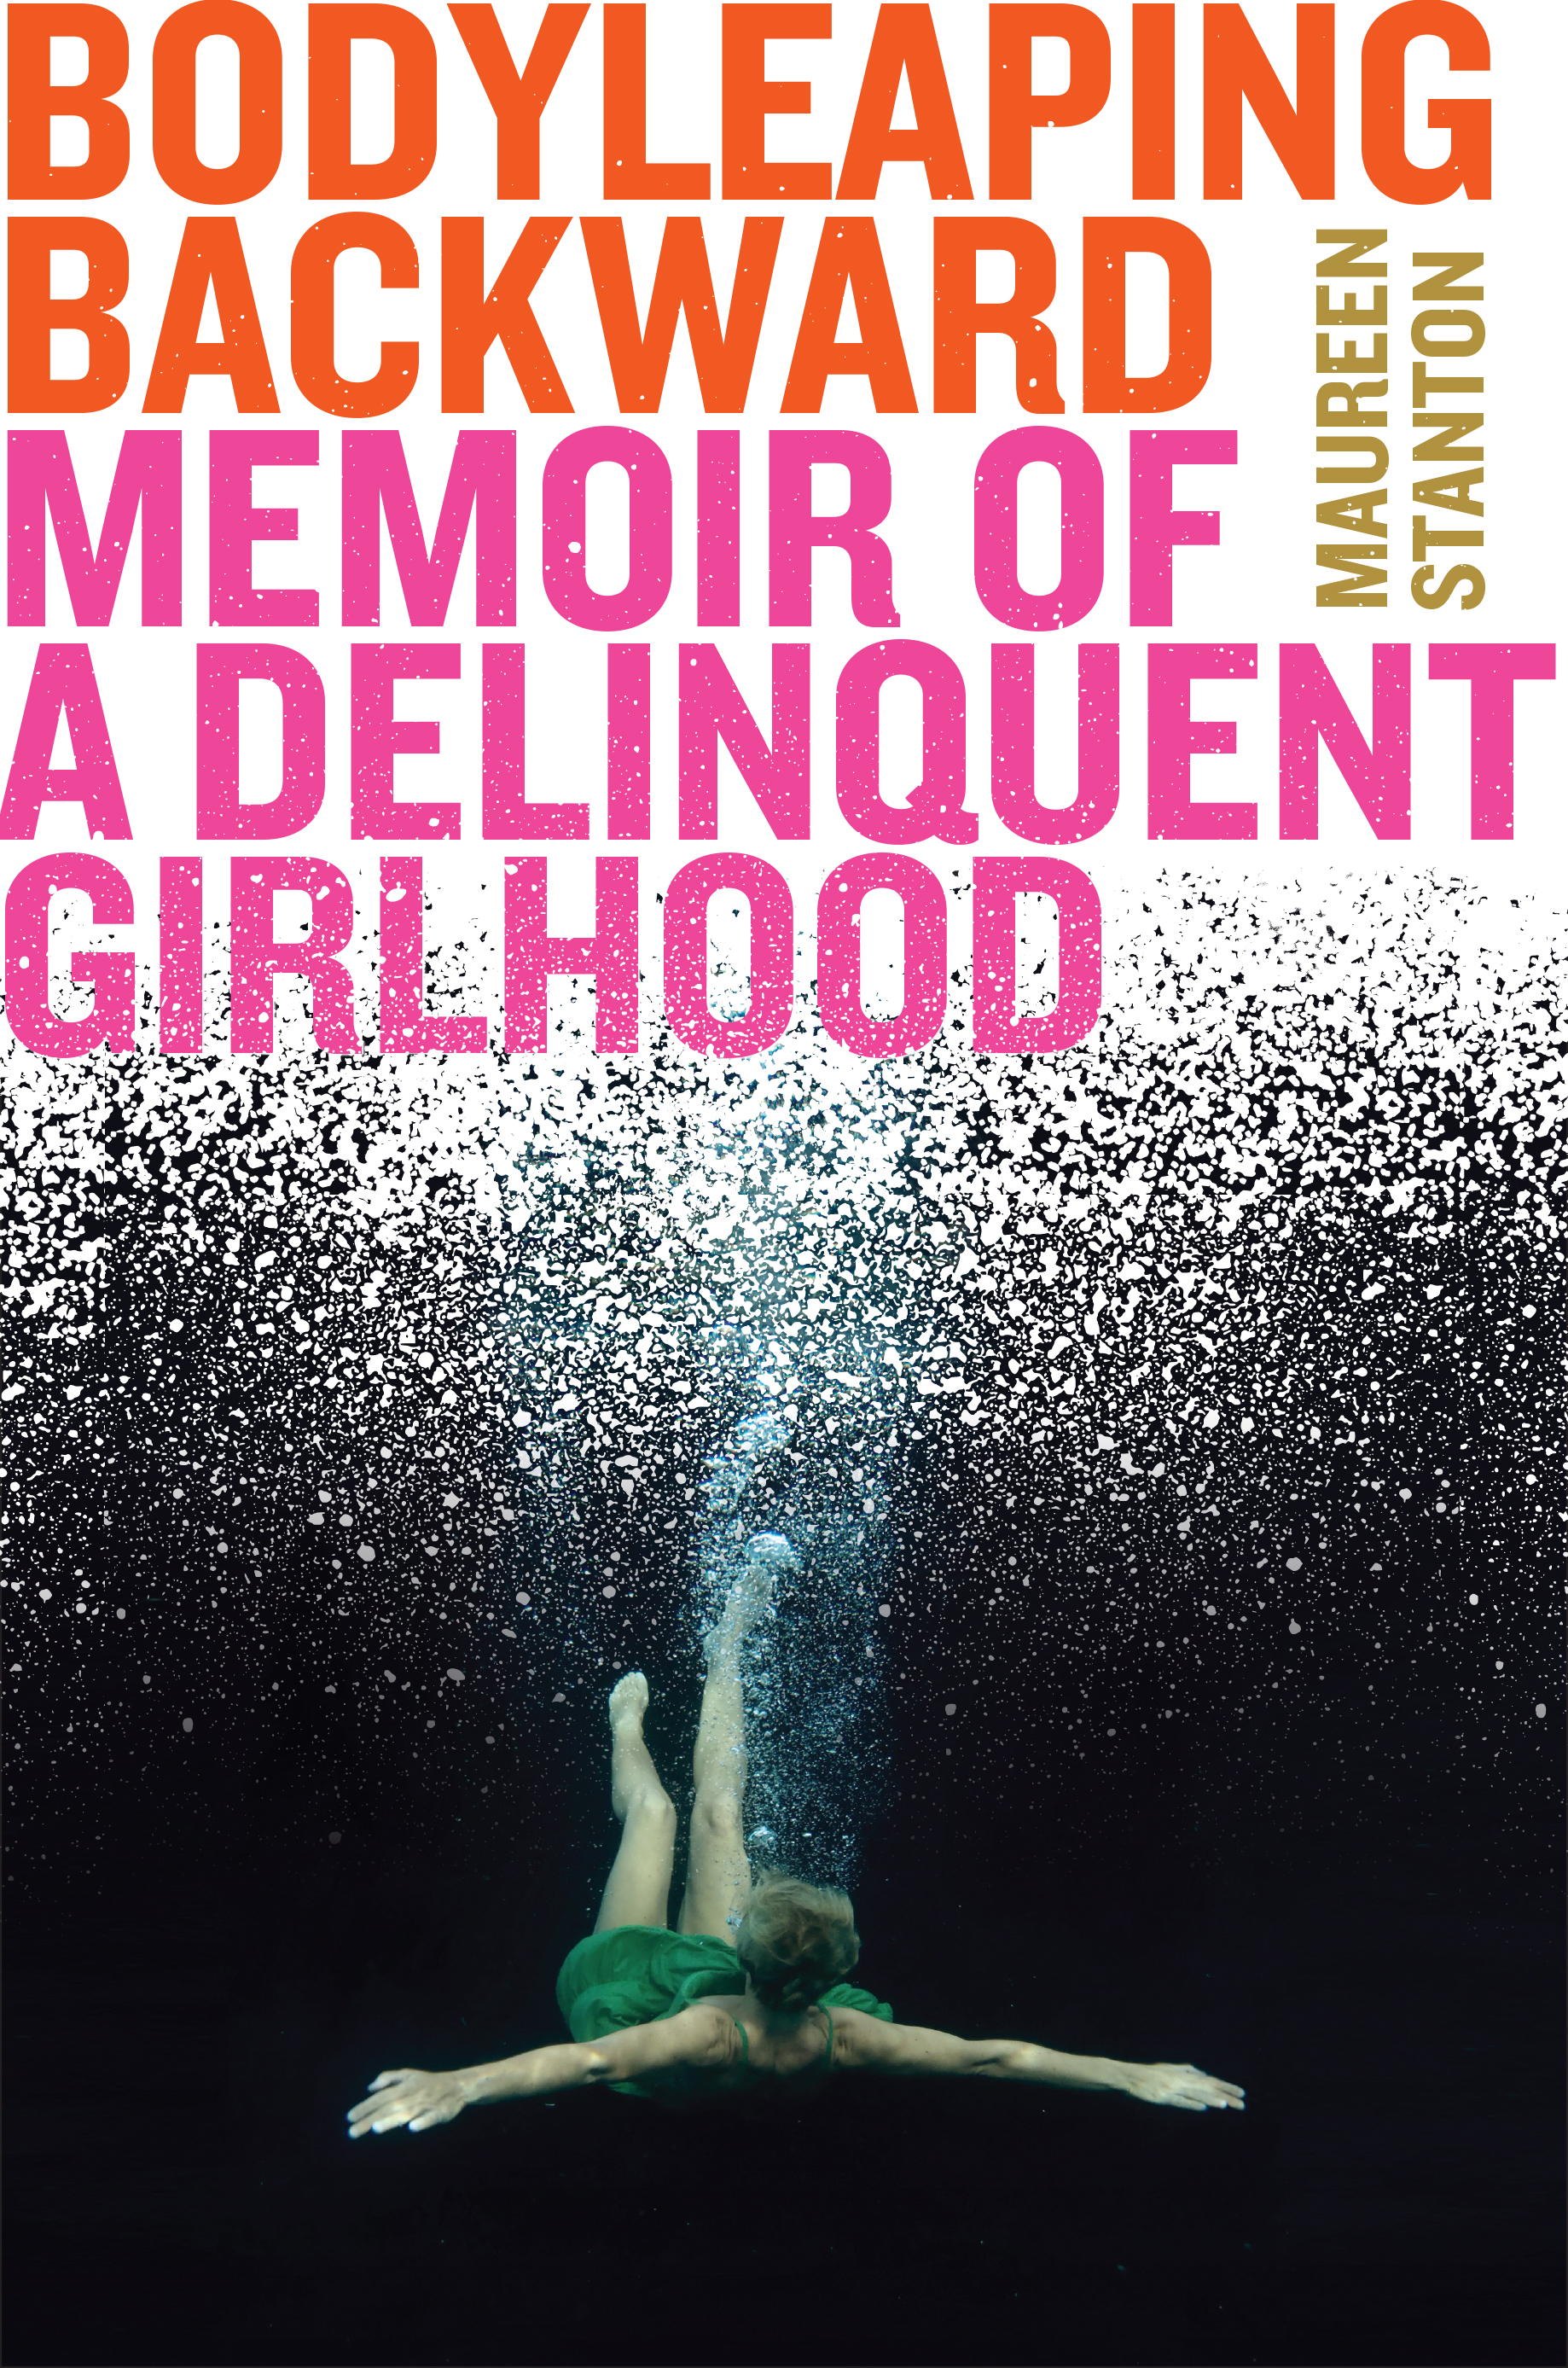 Body Leaping Backward: Memoir of a Delinquent Girlhood